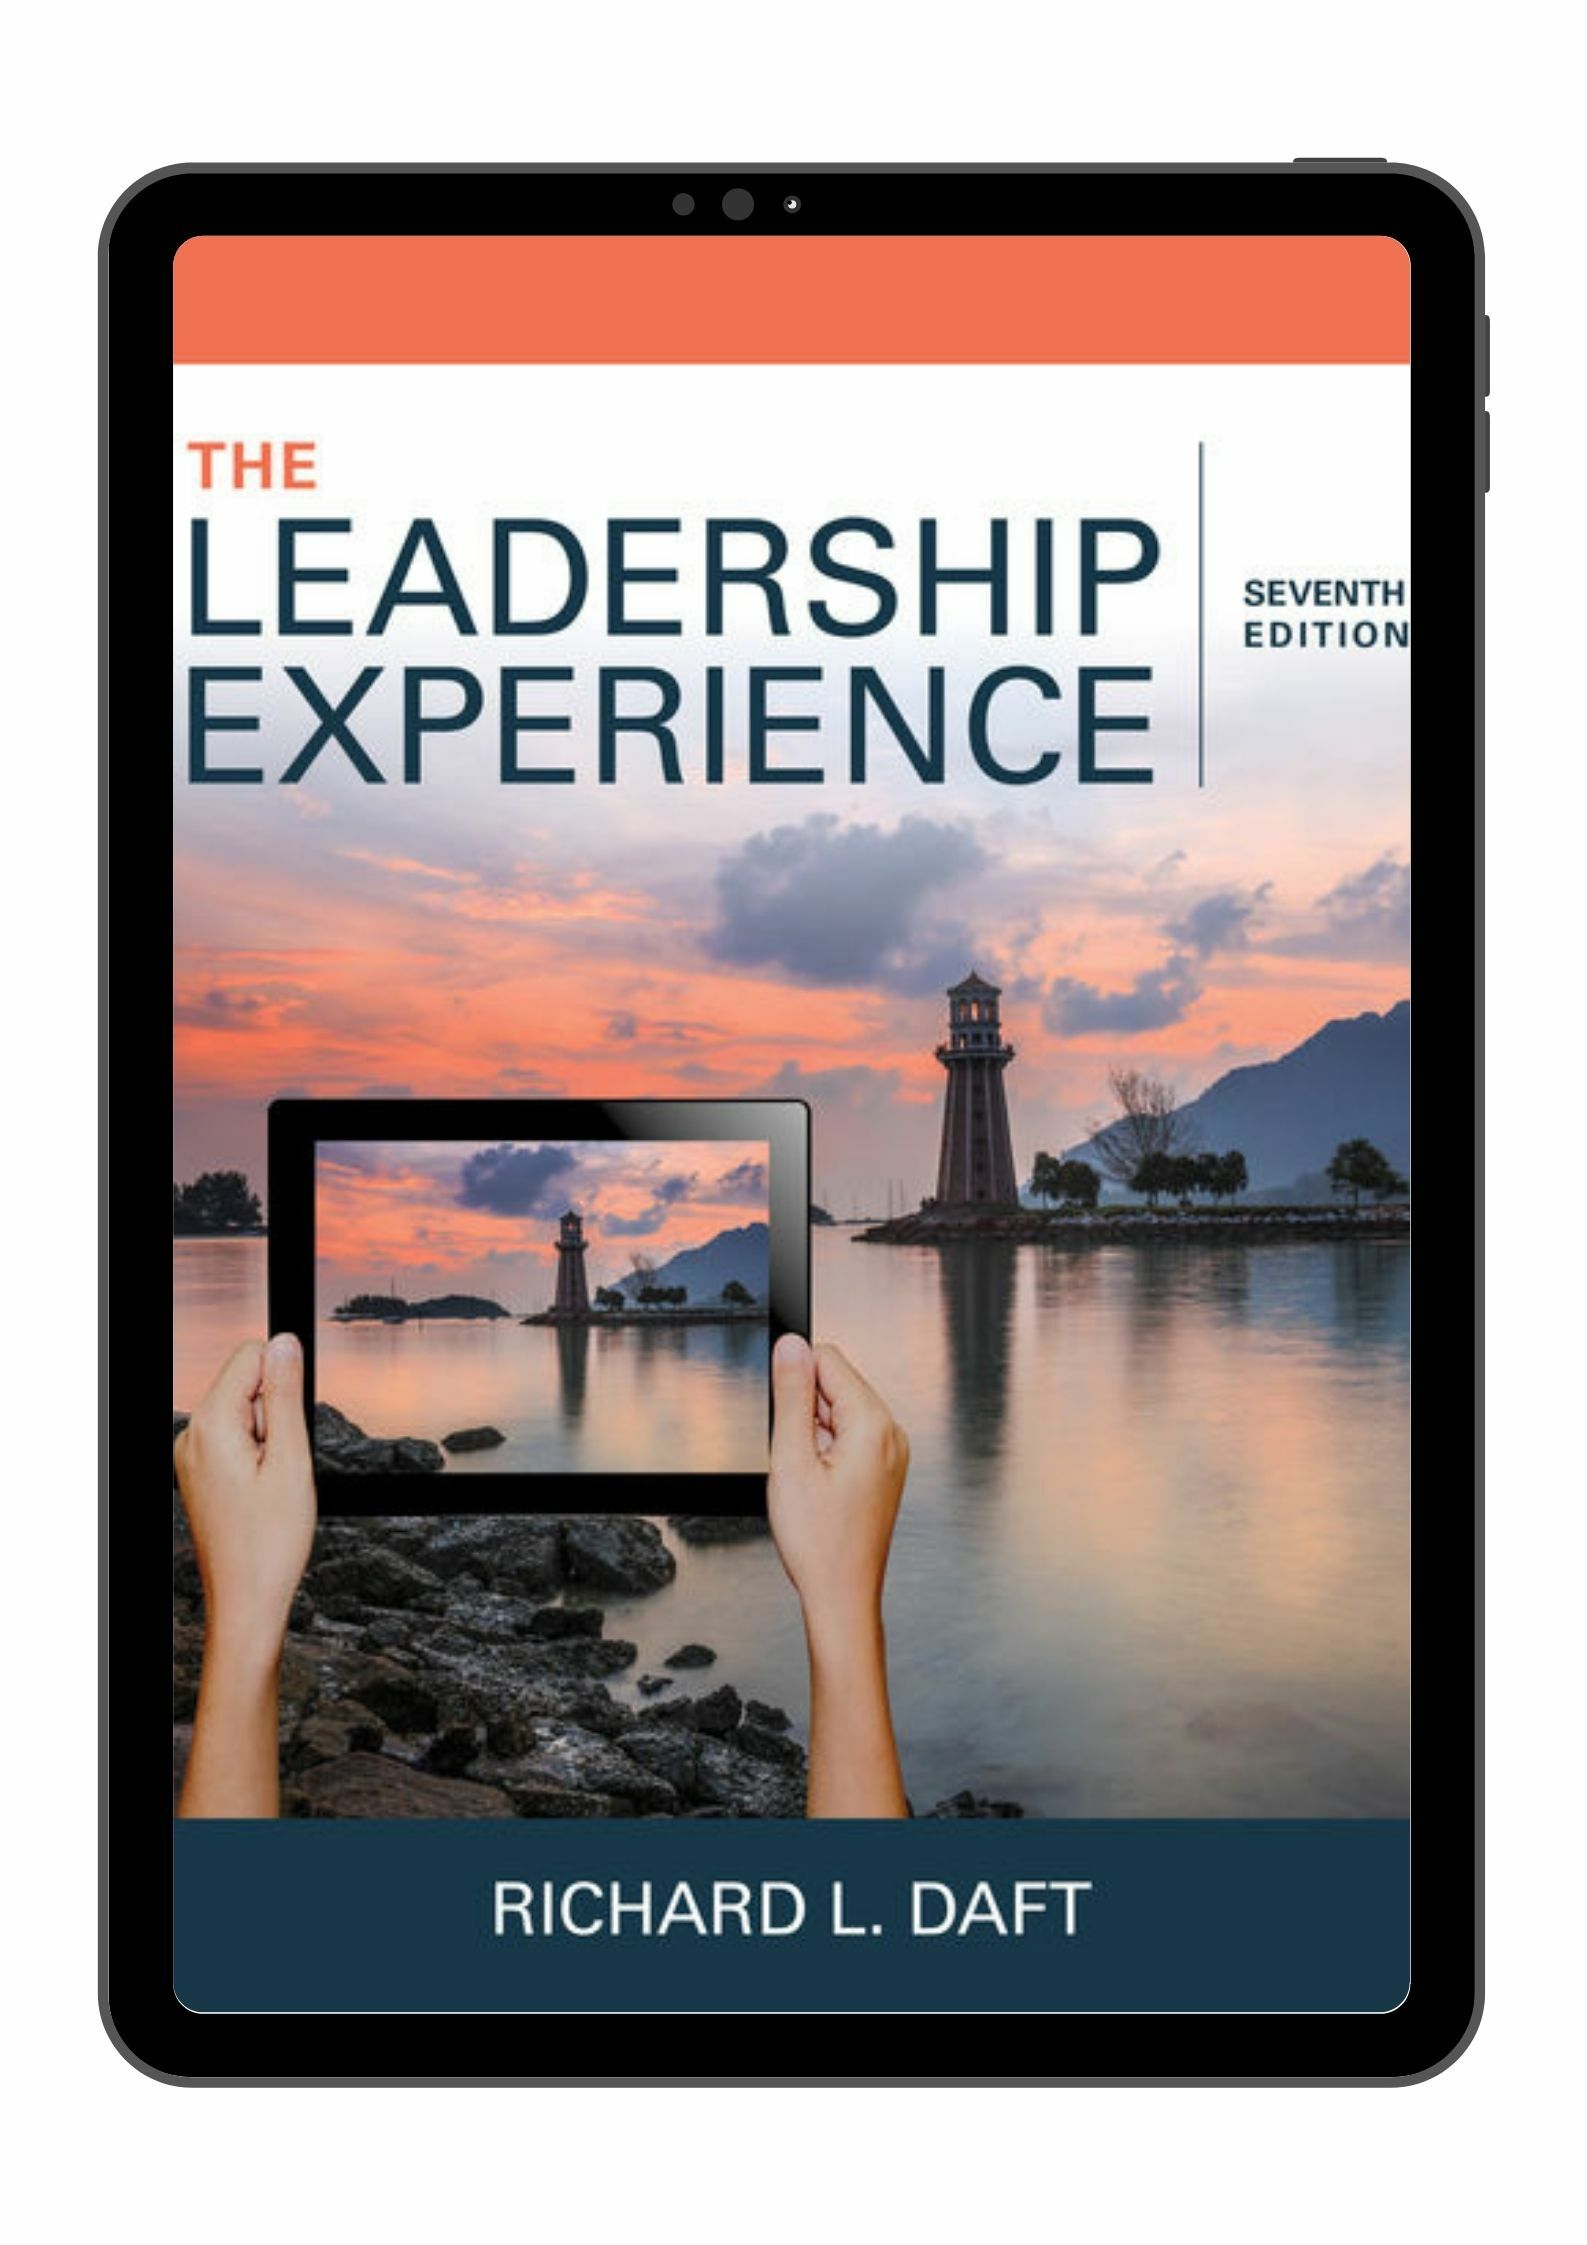 (MindTap) The Leadership Experience 7E by Richard L. Daft  9781337363310